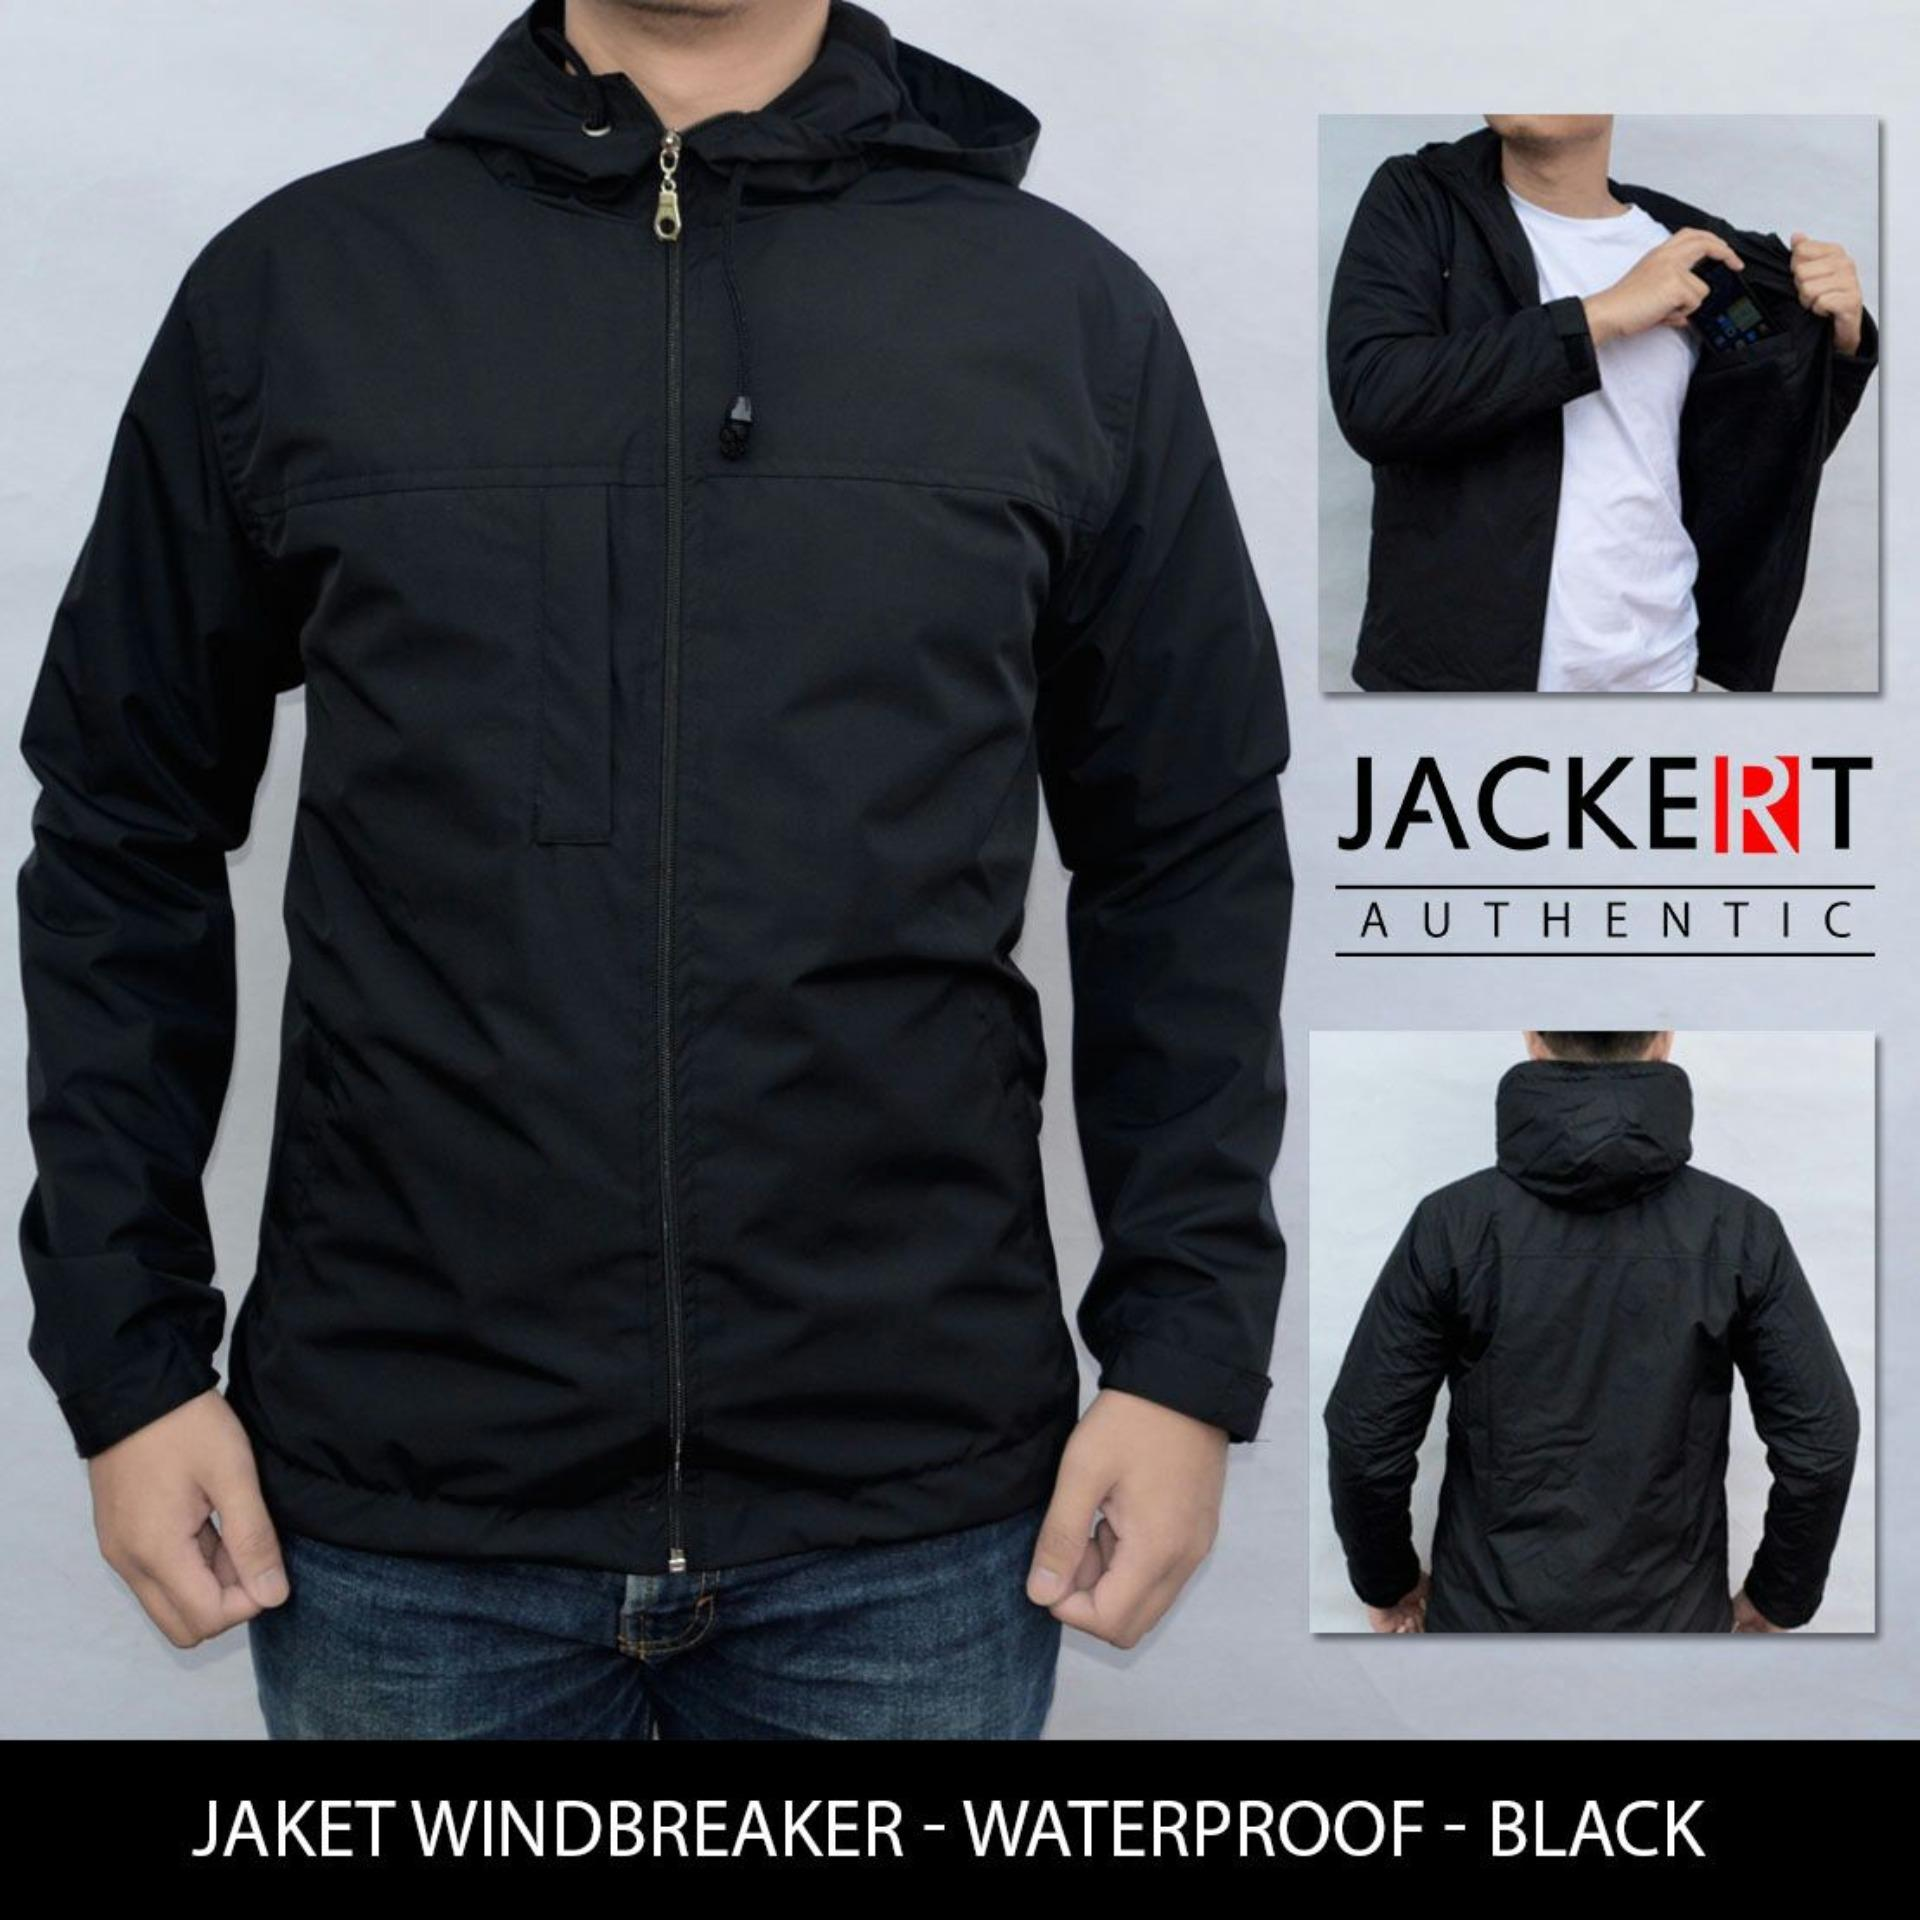 Spesifikasi Jaket Motor Harian Model Simple Polos Hitam Waterproof Semi Outdoor Yang Bagus